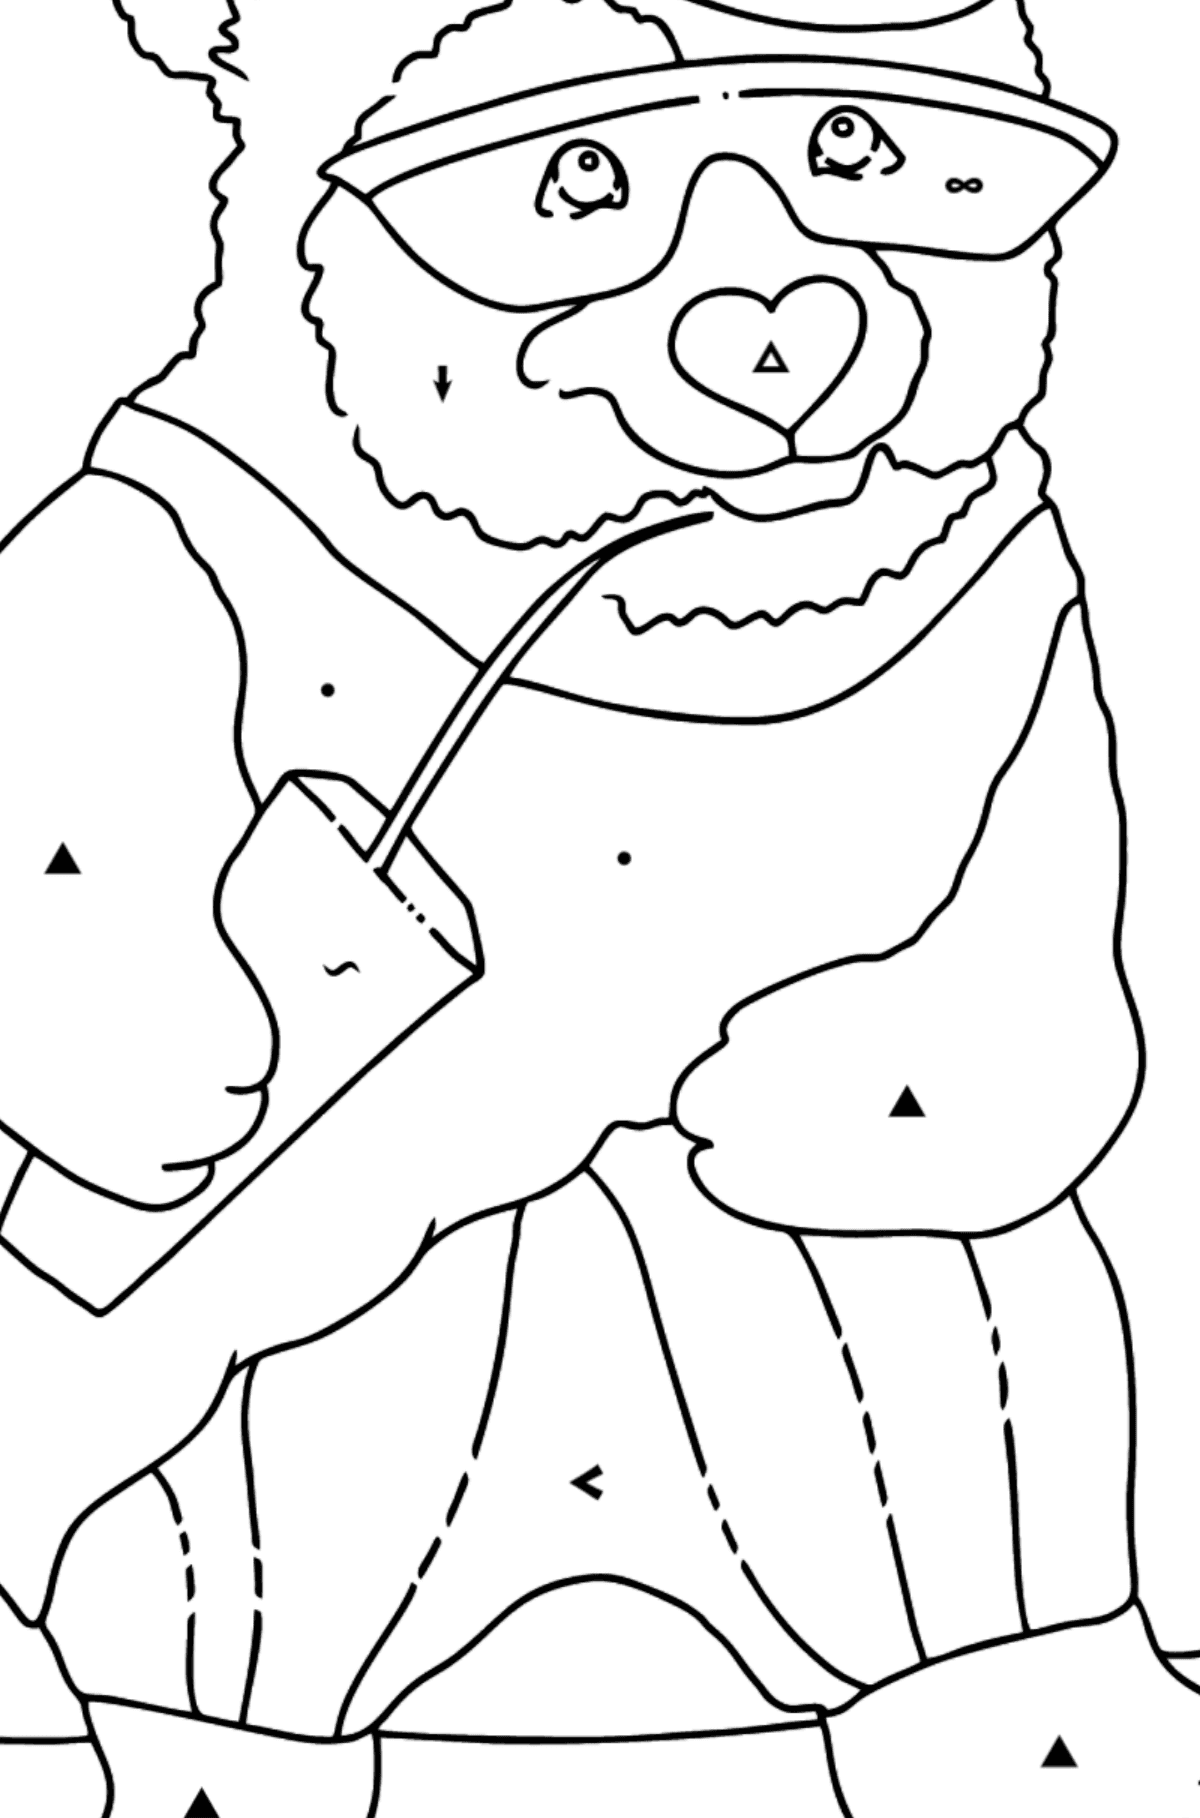 Coloring Page - A Panda on a Skateboard - Coloring by Symbols for Kids